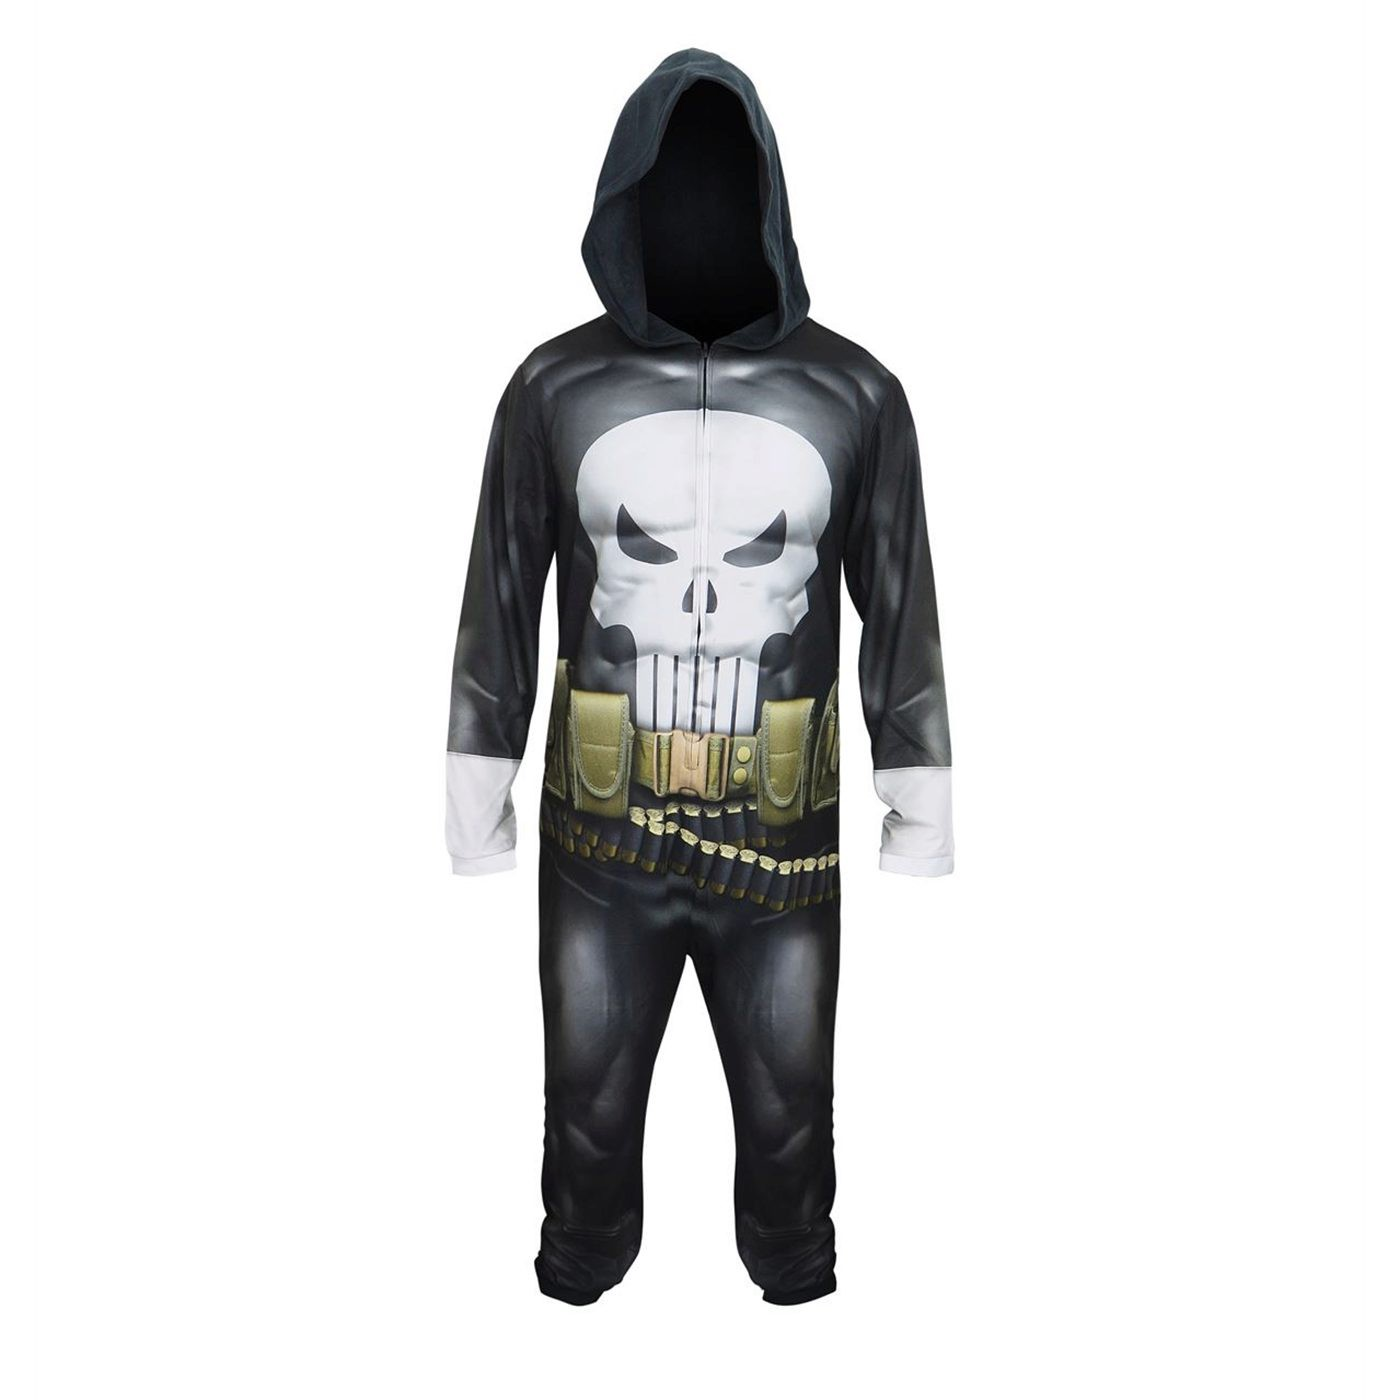 Punisher Sublimated Union Suit